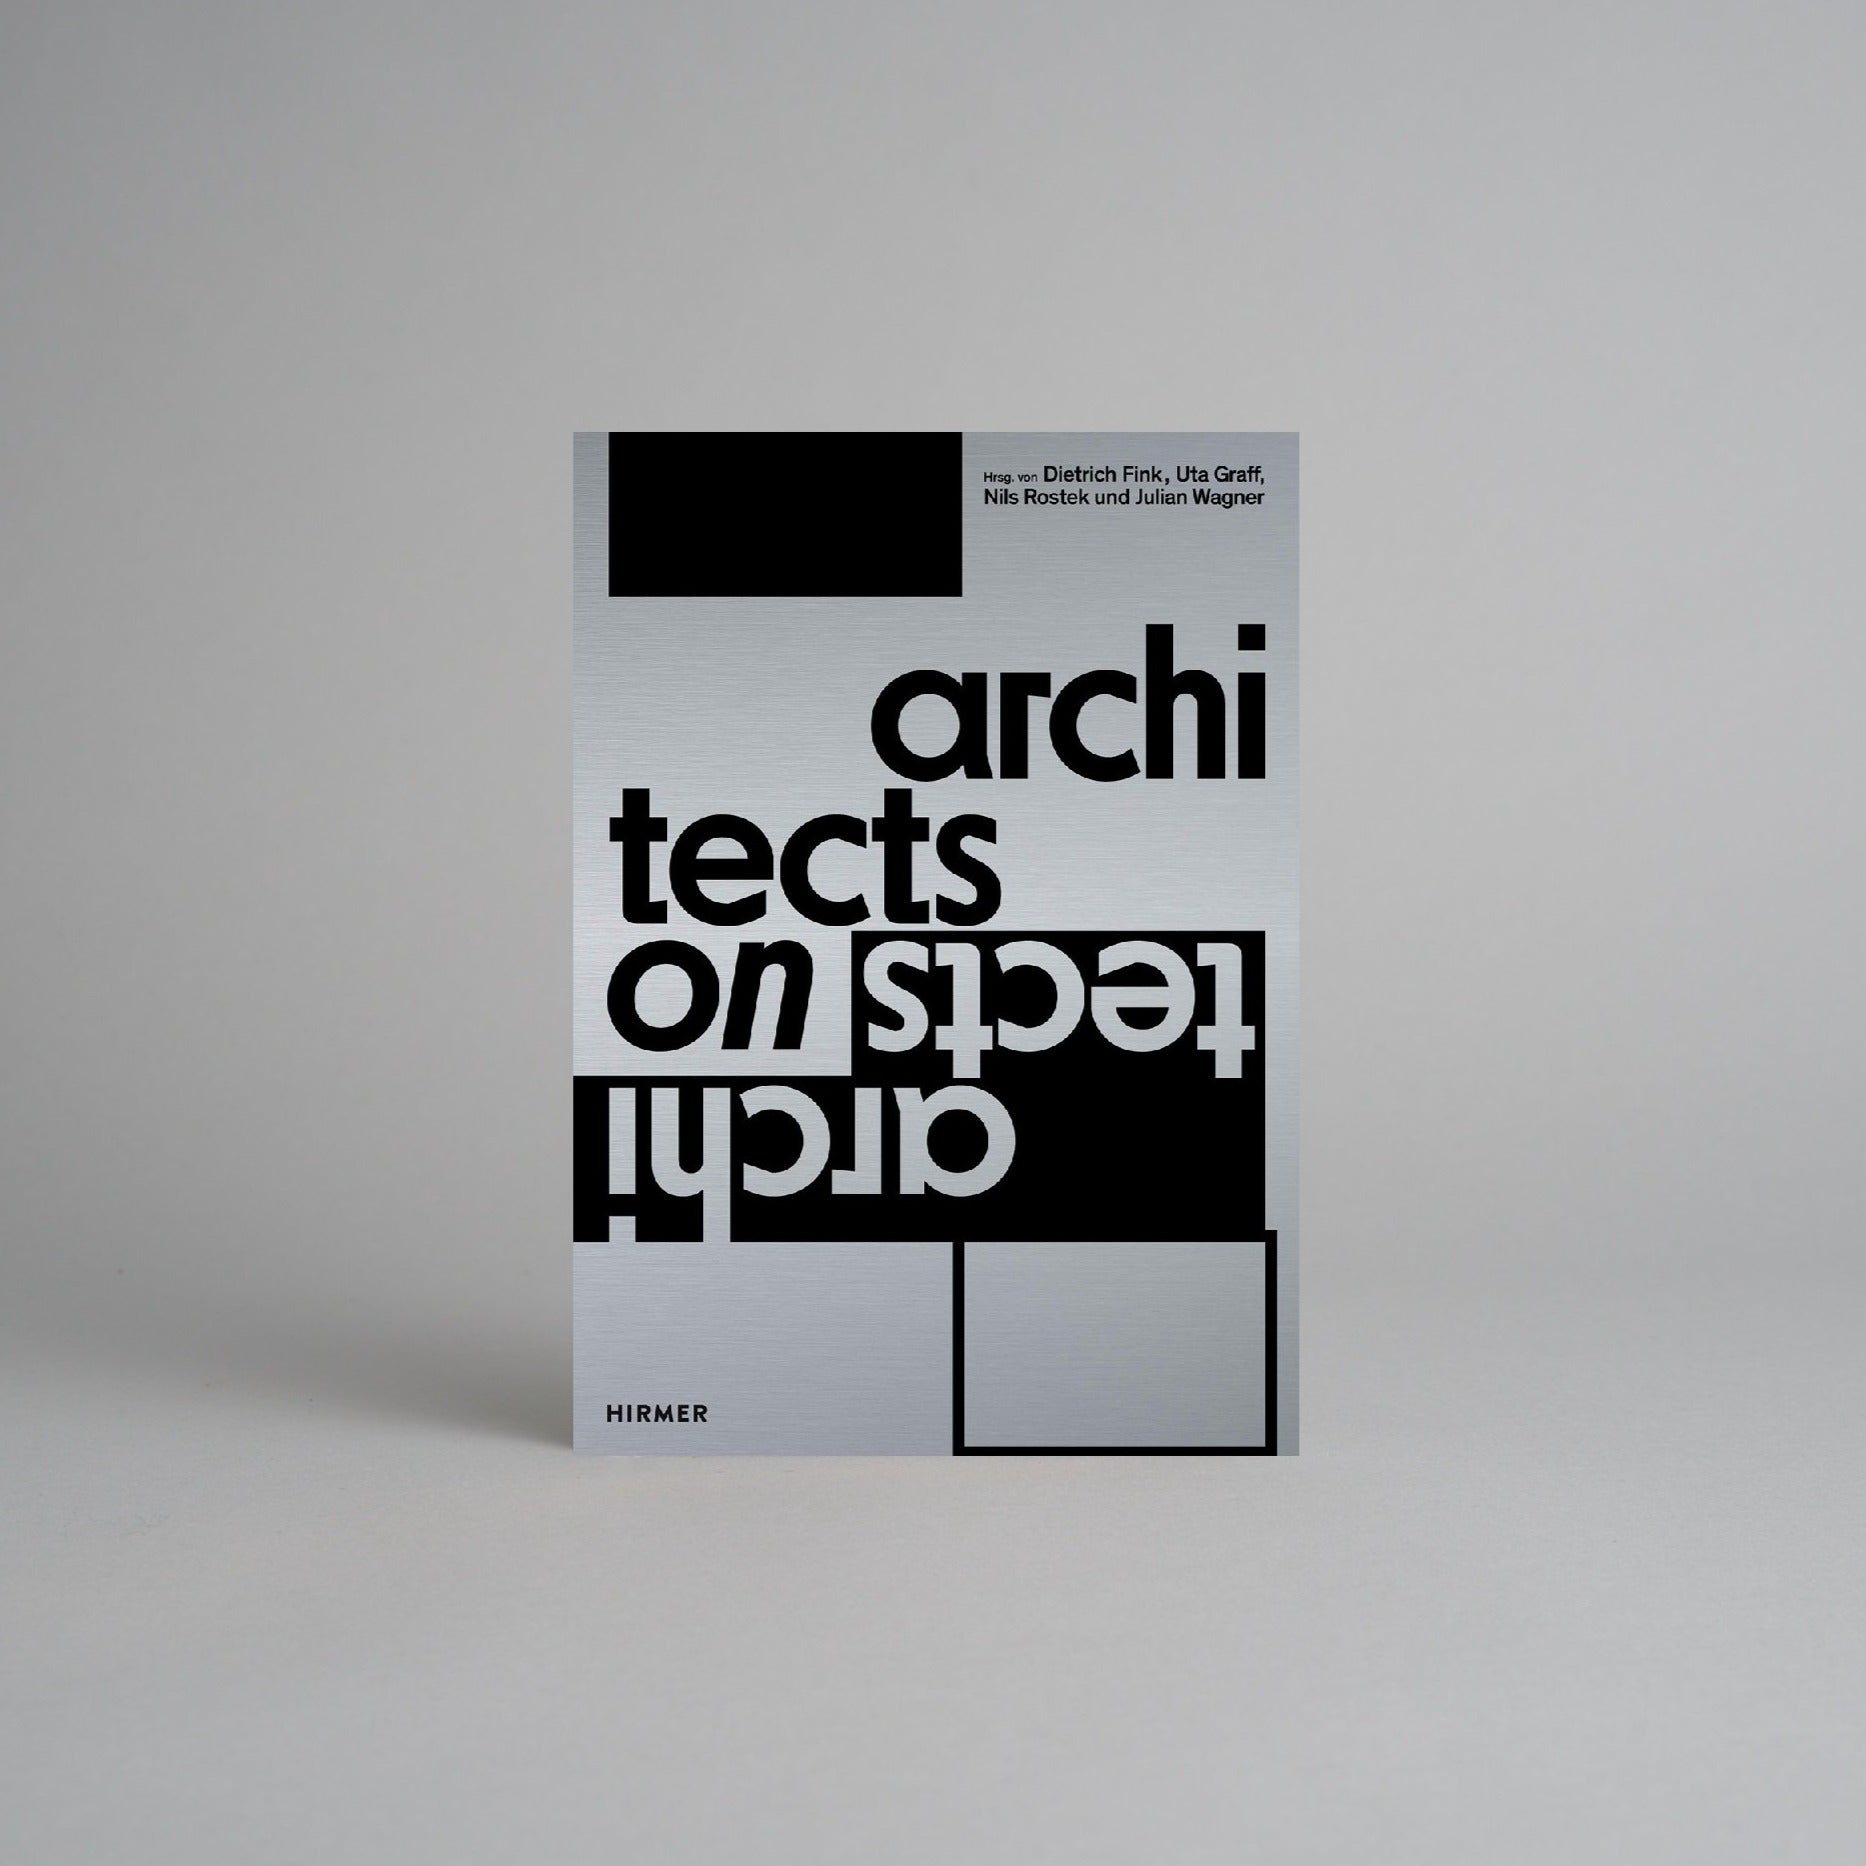 Architects on Architects by Dietrich Fink, Uta Graff, Nils Rostek and Julian Wagner